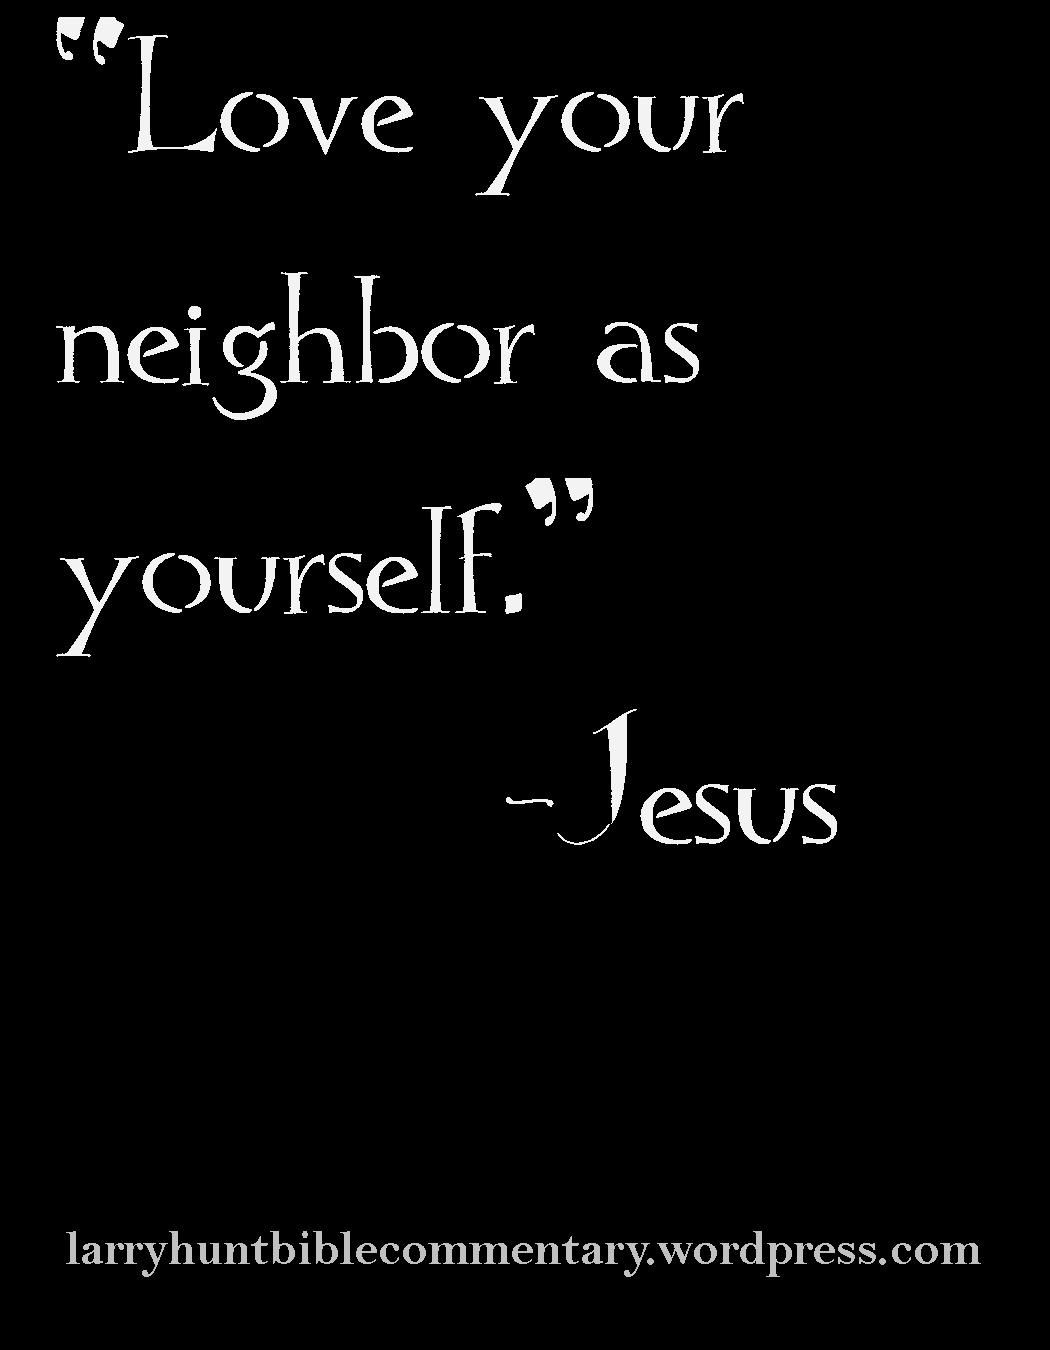 Favorite Bible Verses Love Your Neighbor As Yourself